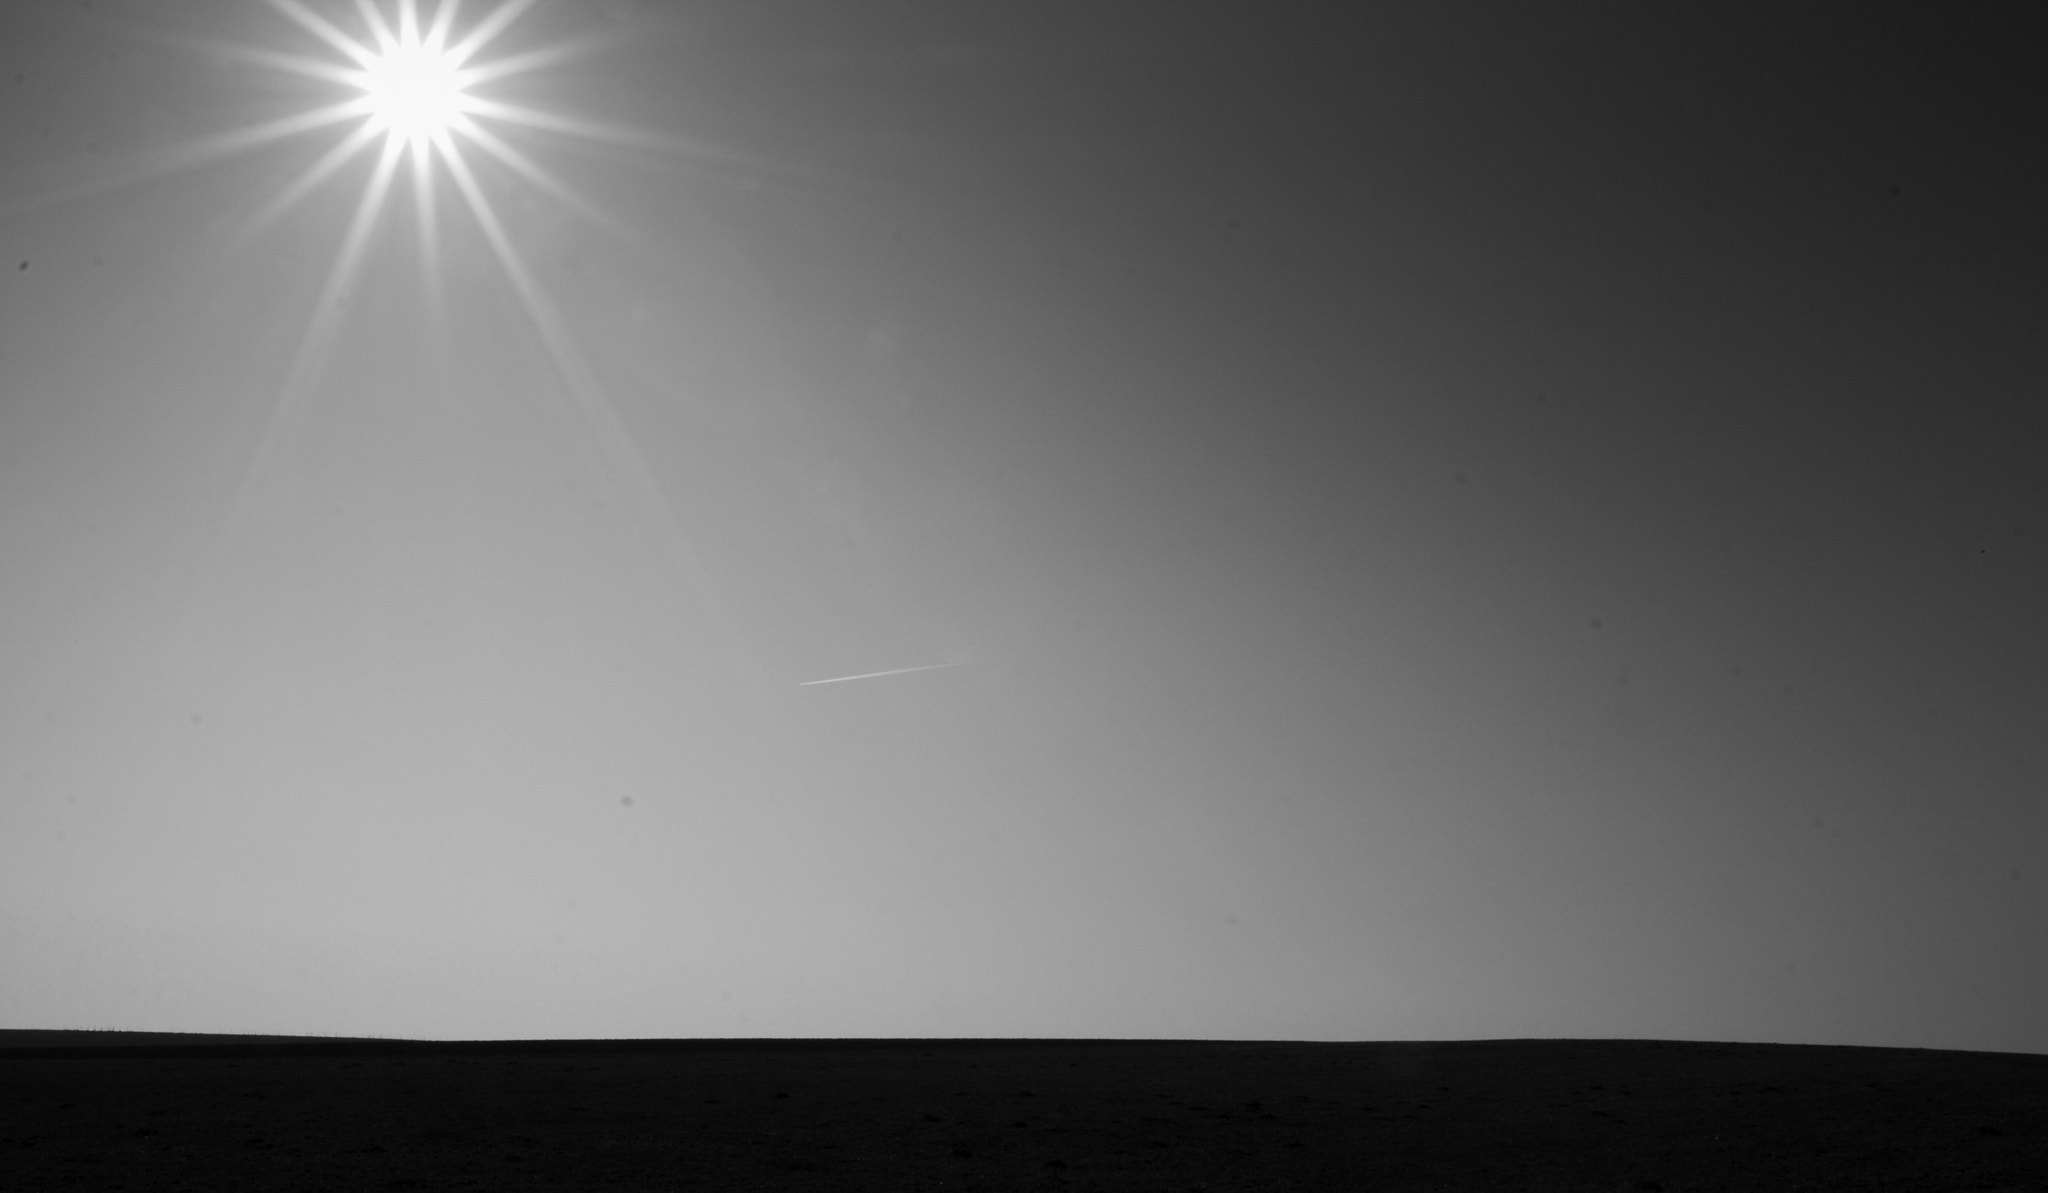 Photograph sunny day  by Justus Steinfeldt     www.justussteinfeldt-photography.de on 500px